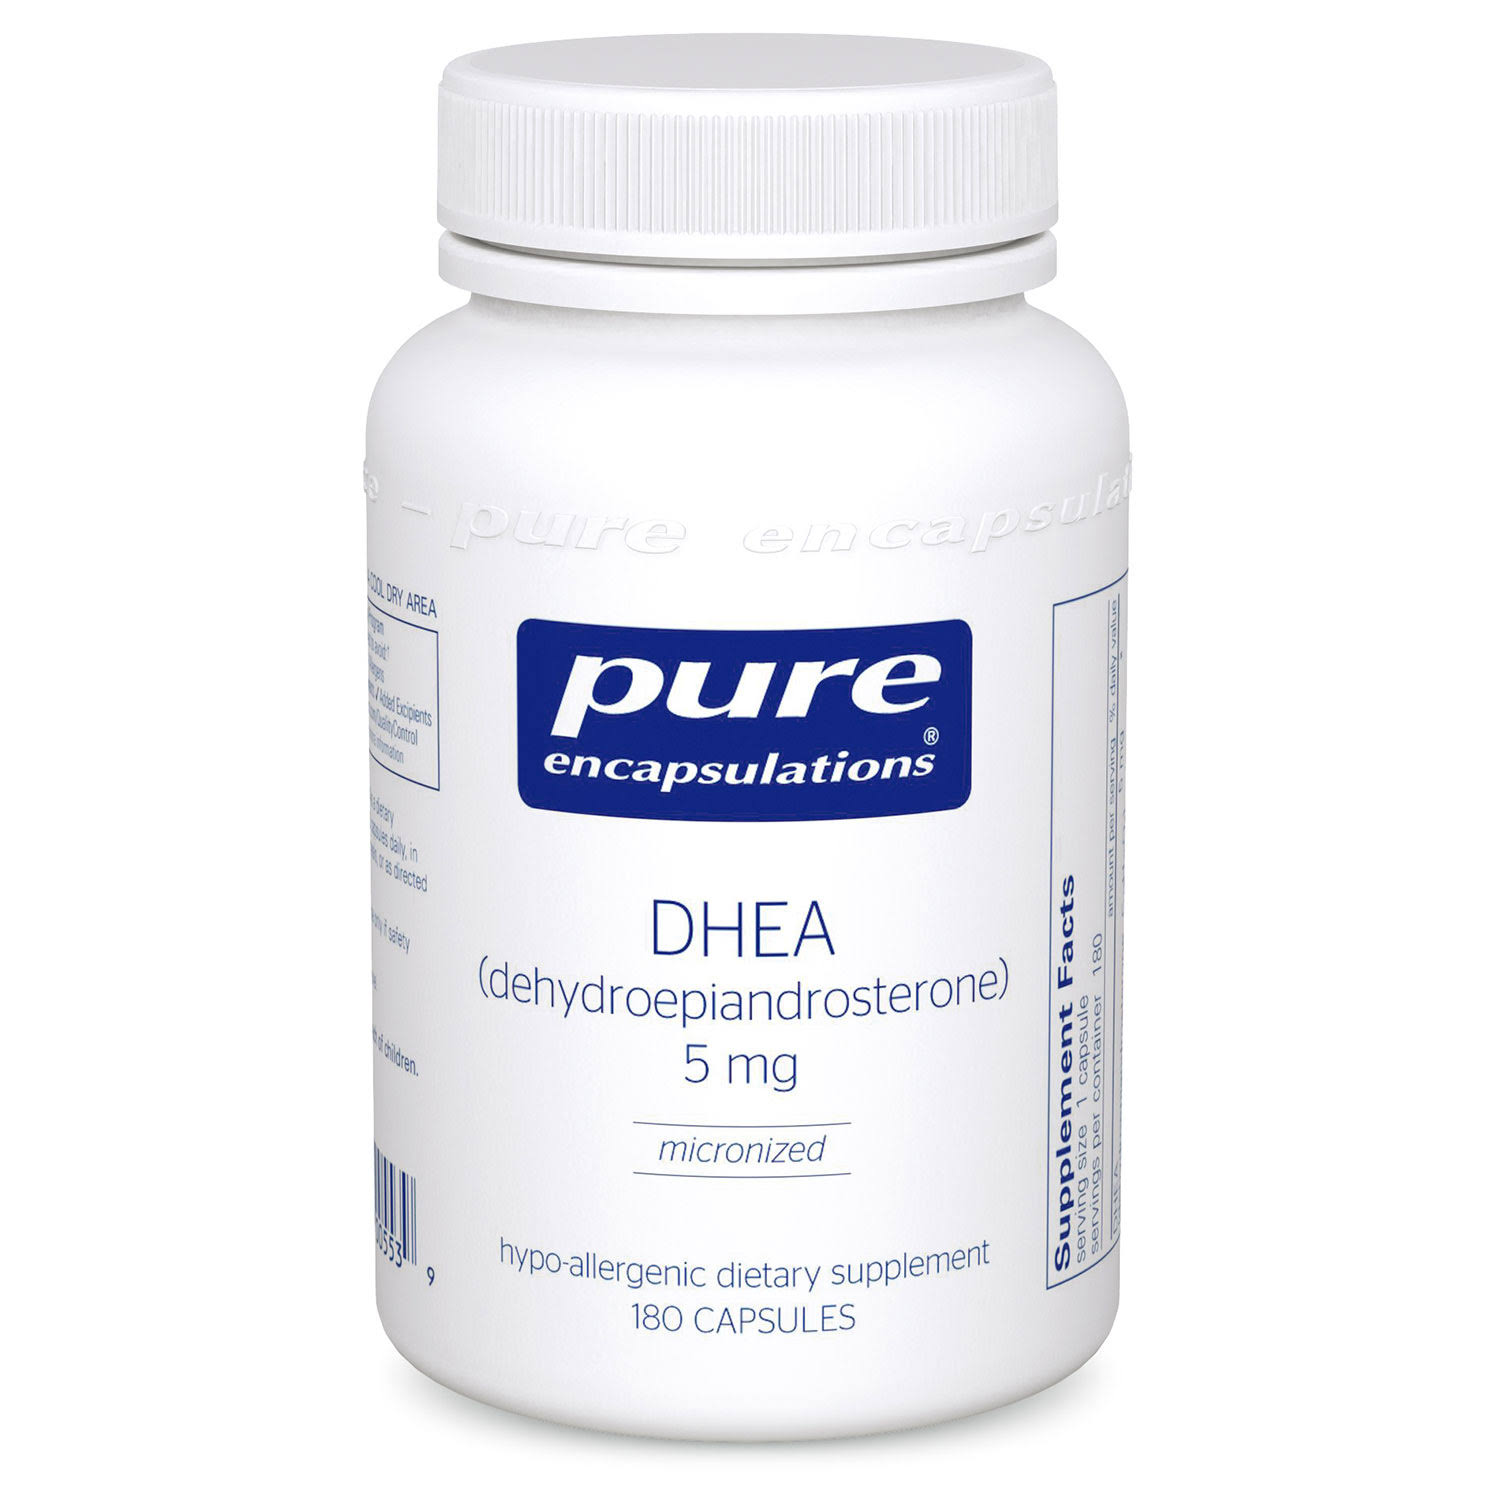 Pure Encapsulations - DHEA - 5 mg - 180 Capsules